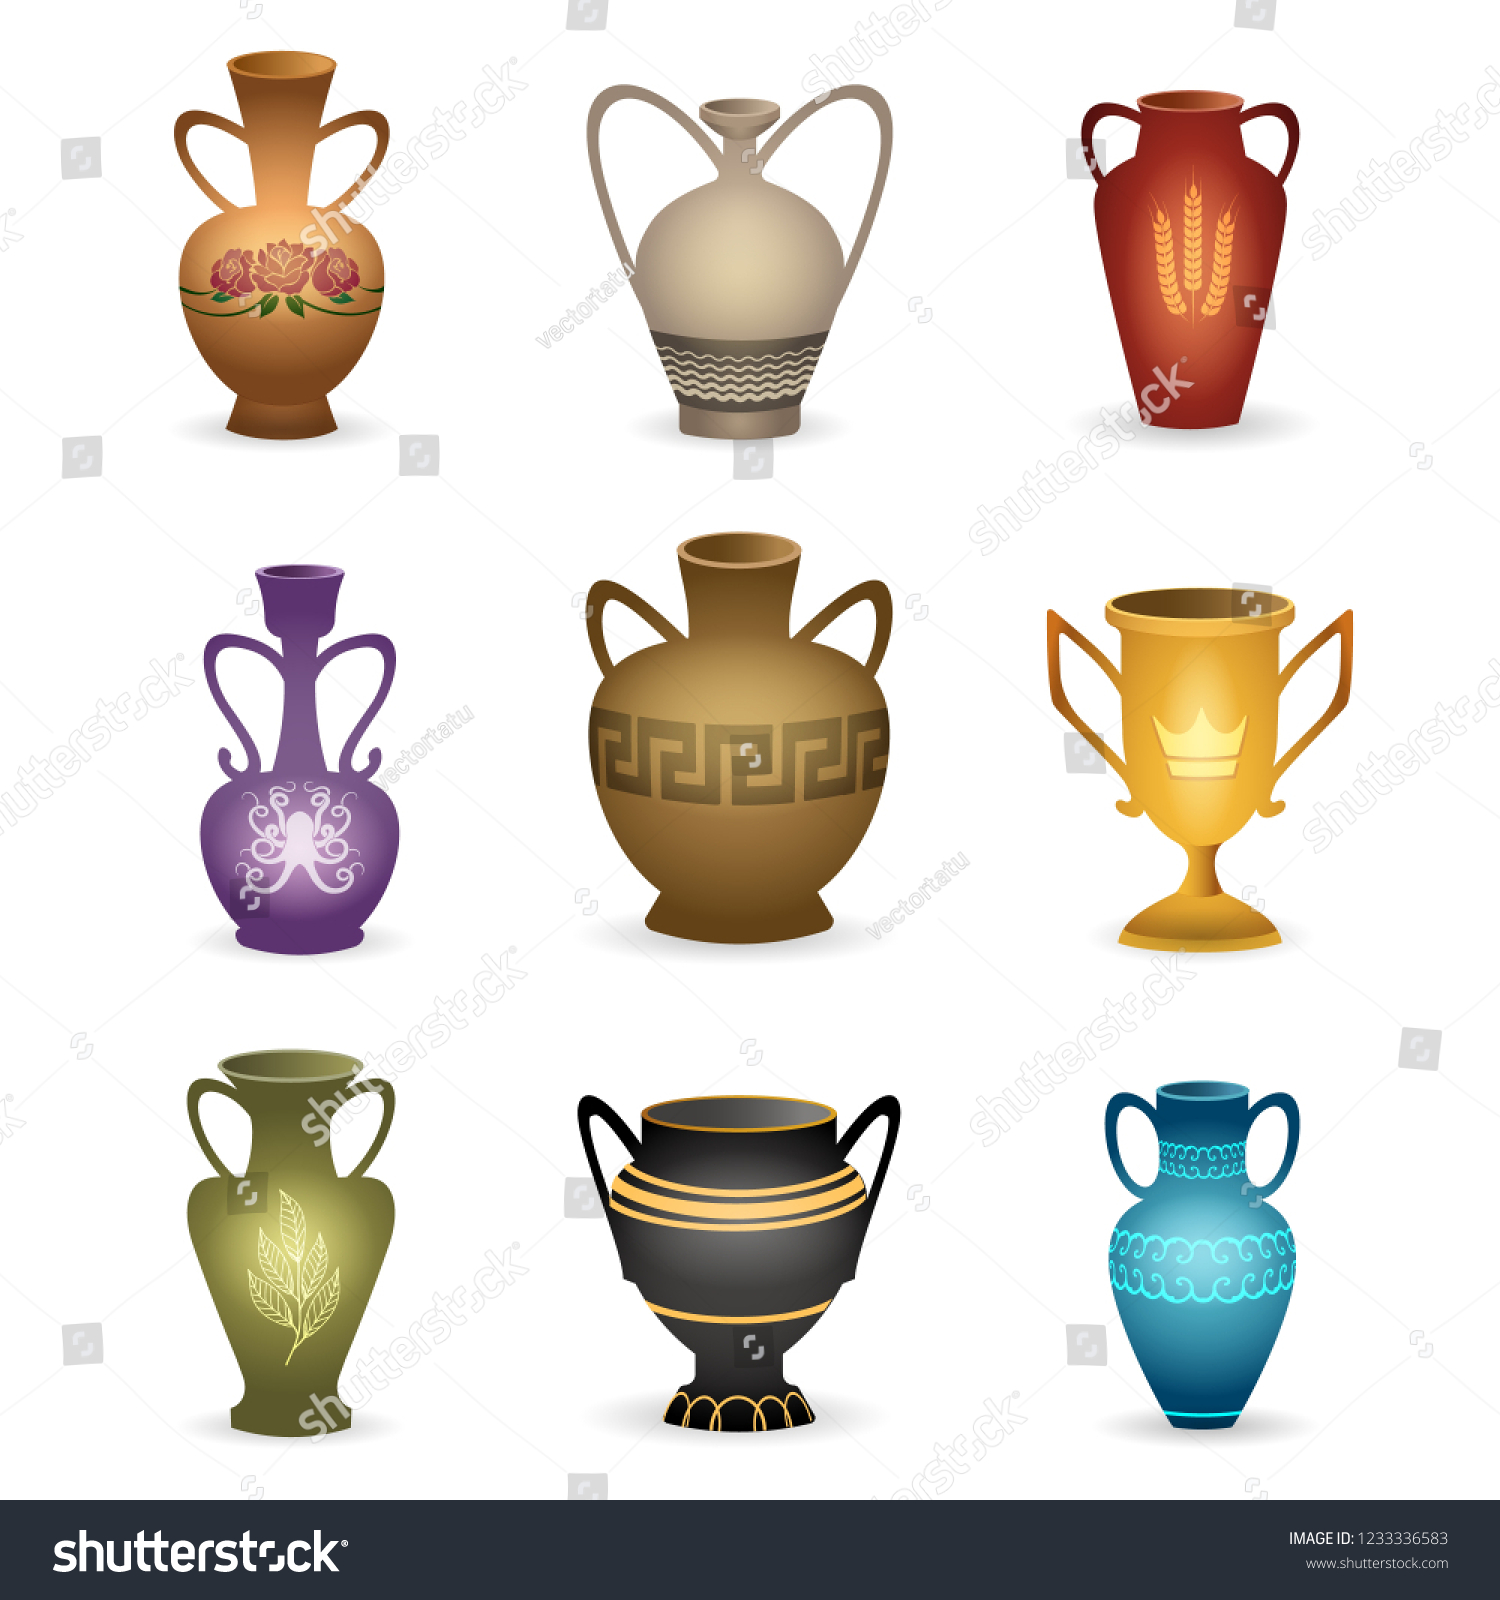 Old Vases Vintage Vessels Isolated On Stock Vector Royalty Free 1233336583